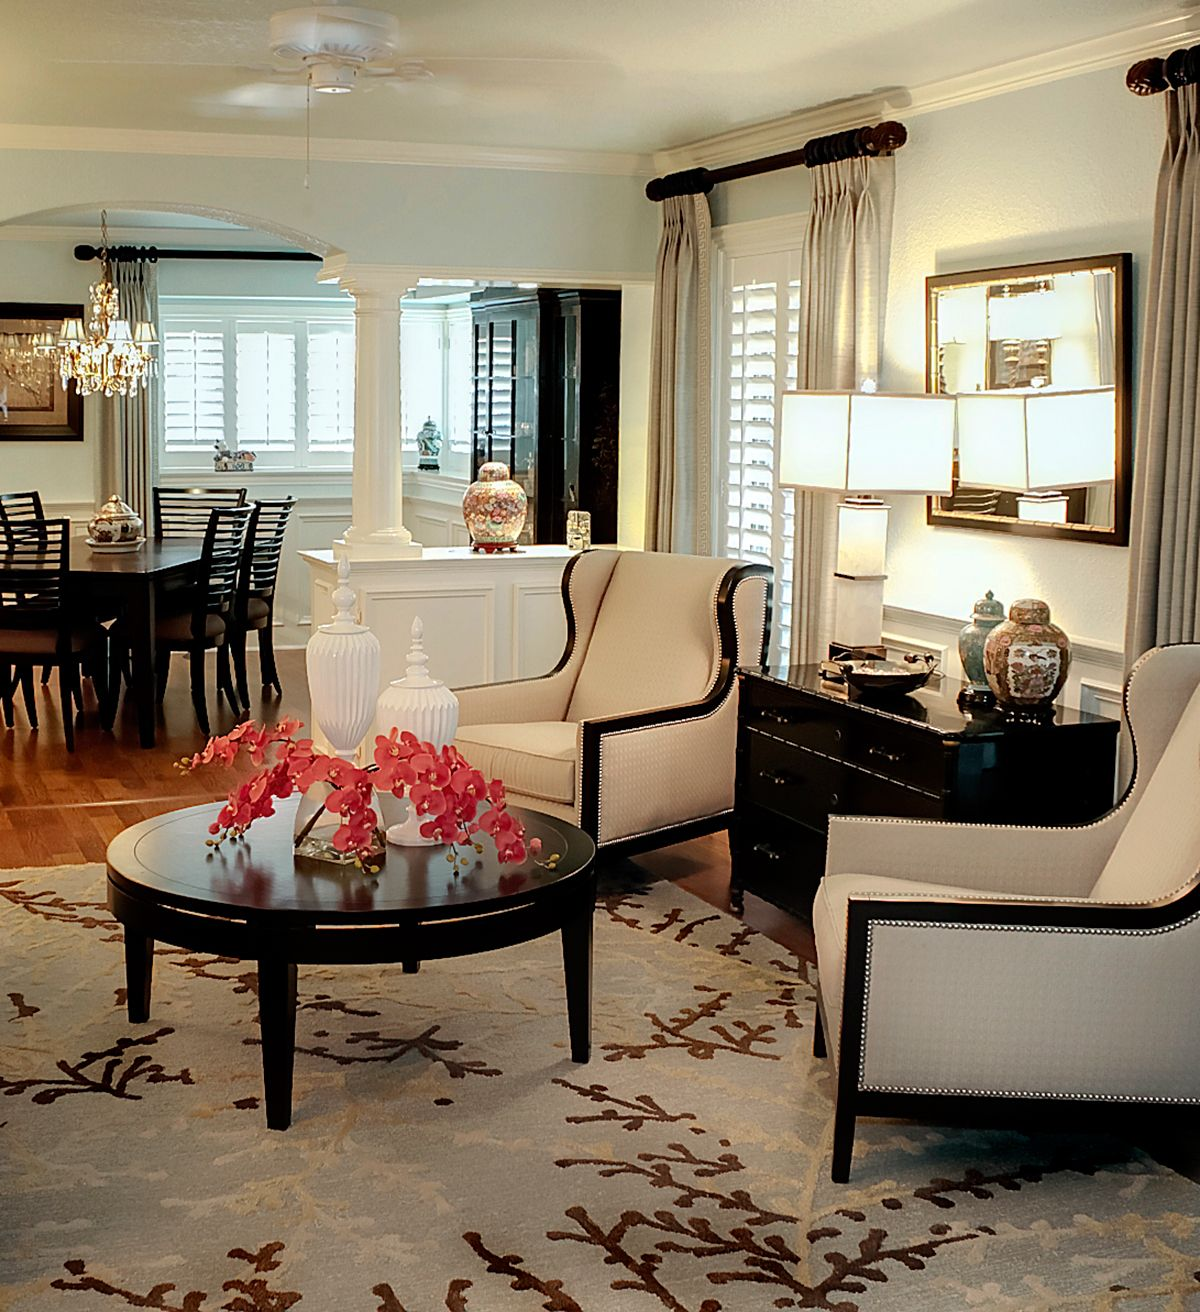 Living Room Furniture Houston Tx: Living Room And Interior Design By Mary Strong From Star